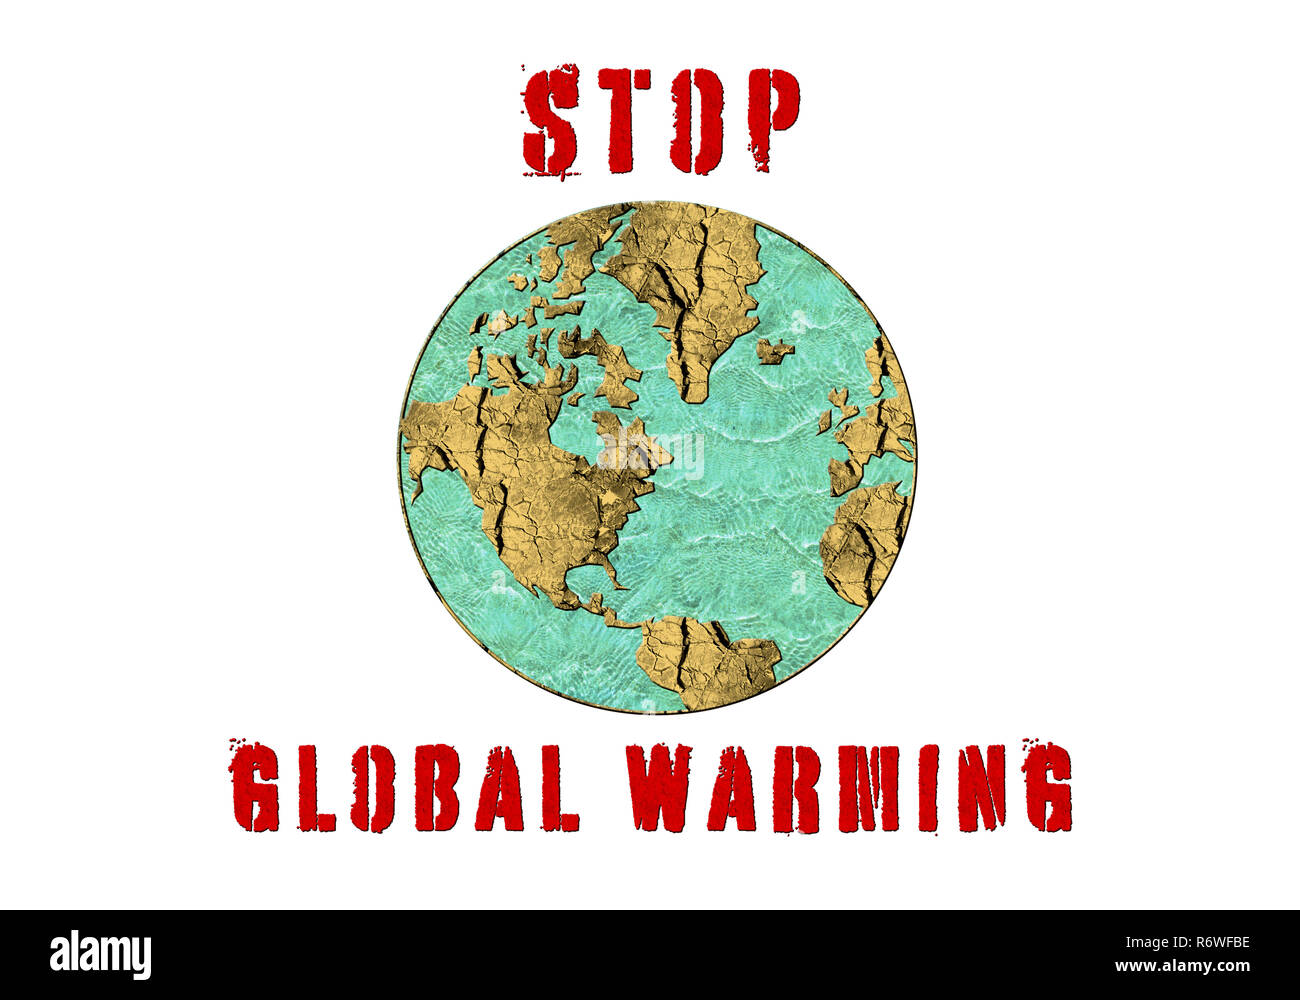 Stop Global Warming, a conceptual image symbolising effects of drastic change in climate and environment of our planet - Stock Image